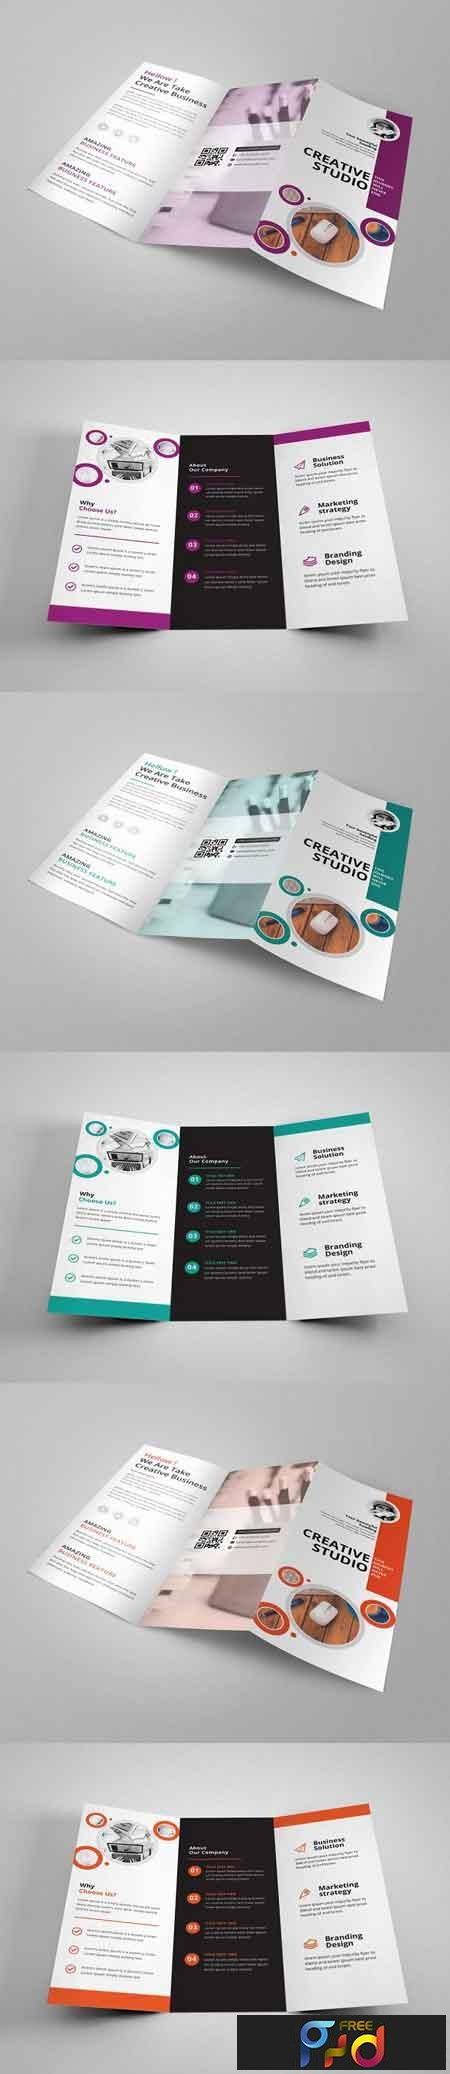 Trifold Brochure 4 3136703 1